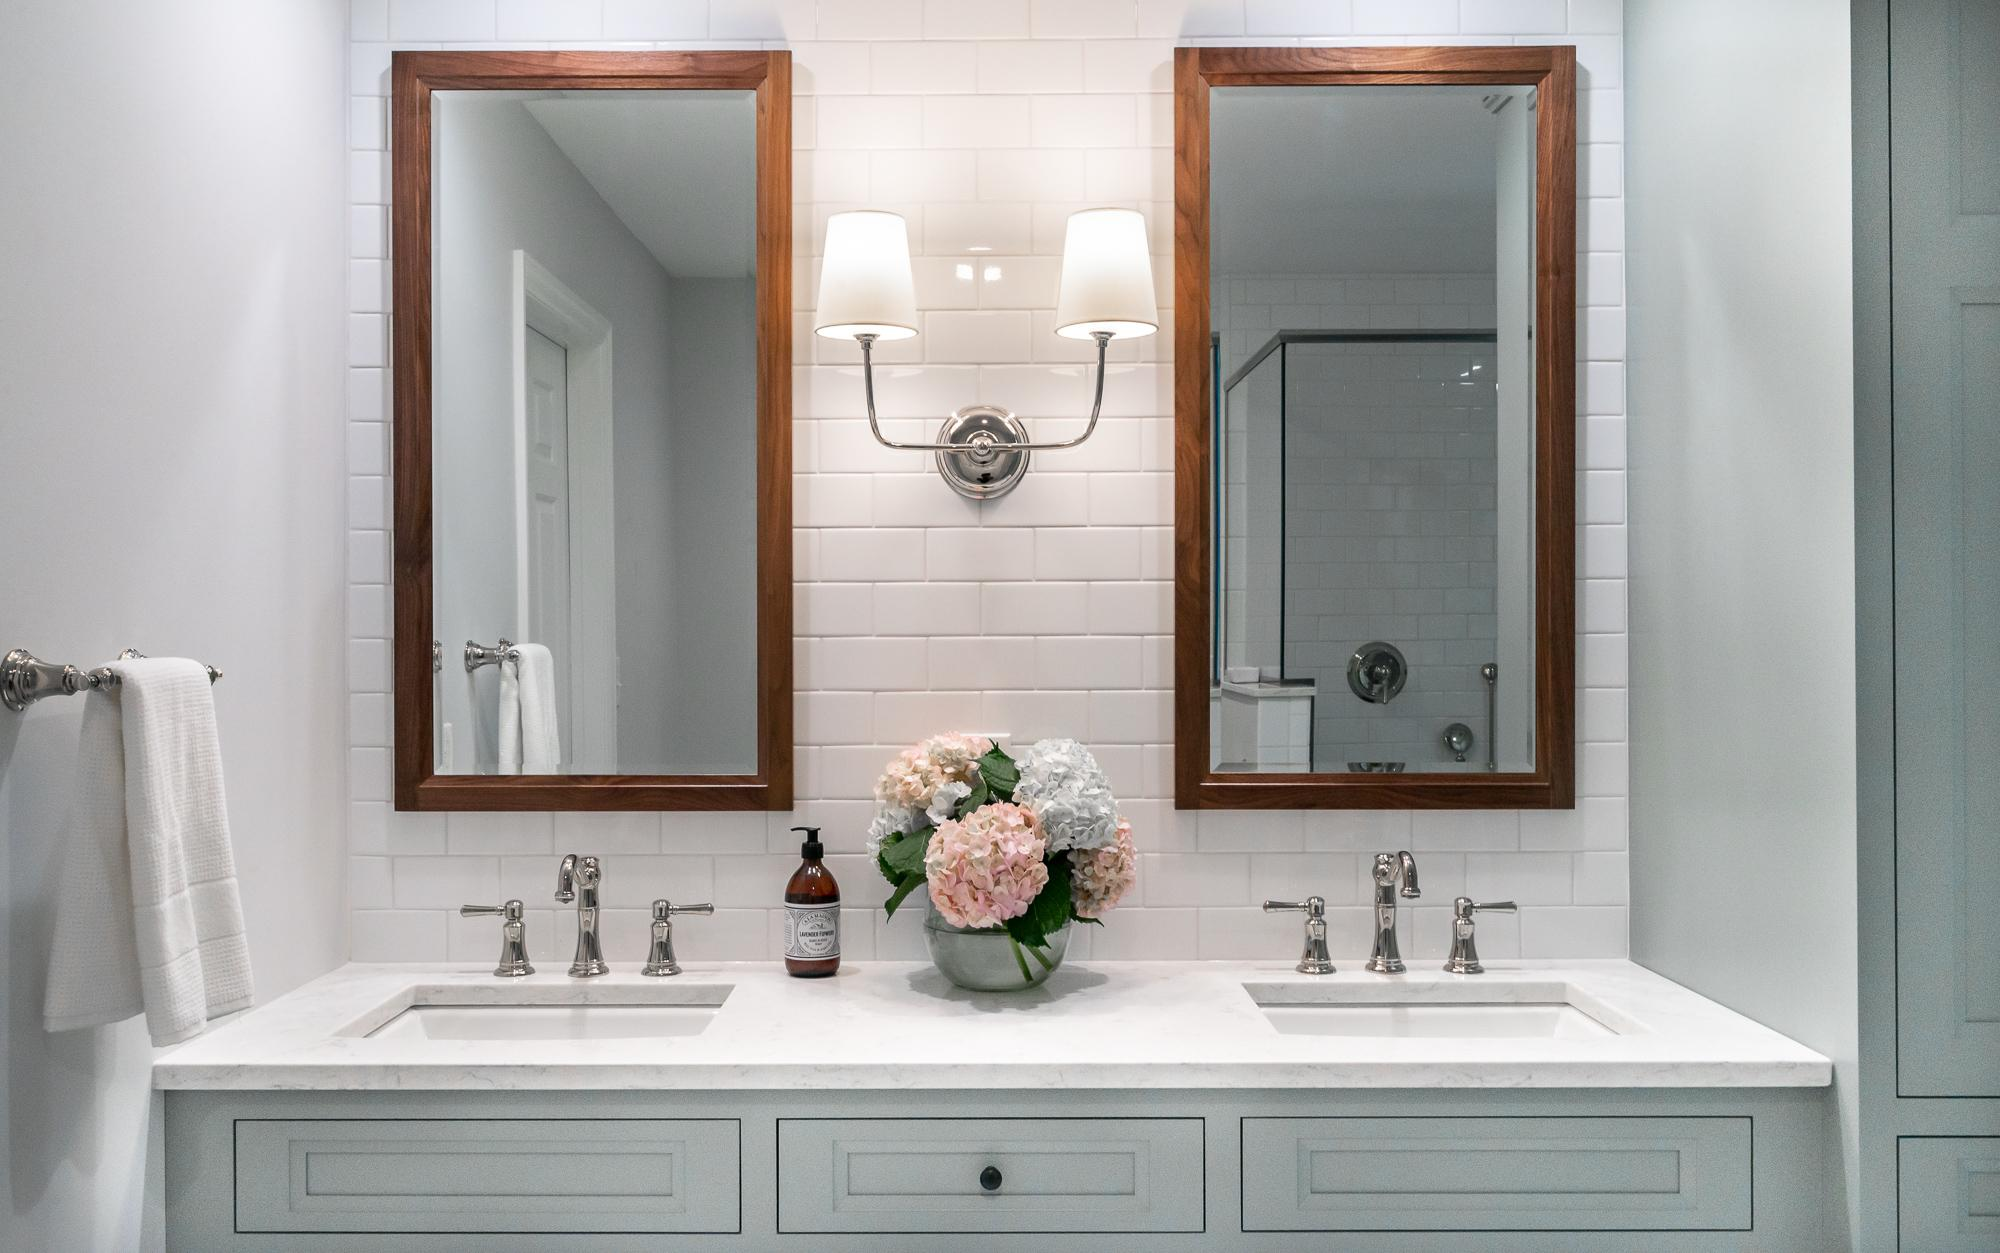 Bathroom with white tile, teal cabinets, and duel mirrors